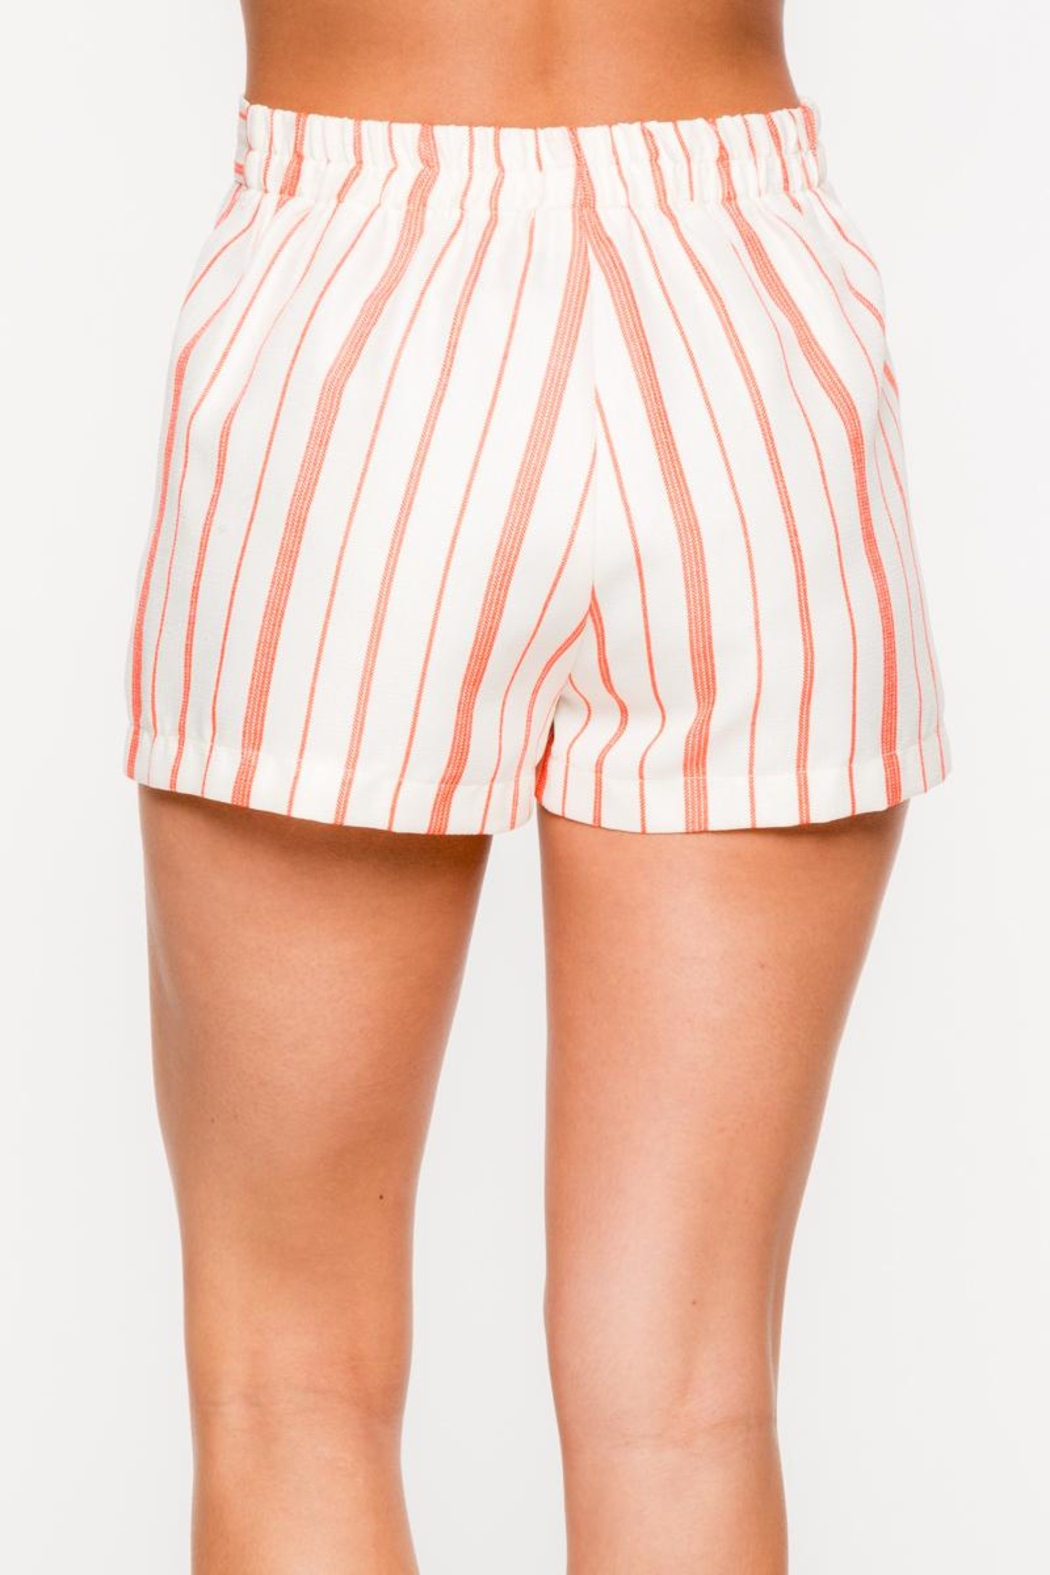 Everly Vertical Striped Shorts - Side Cropped Image